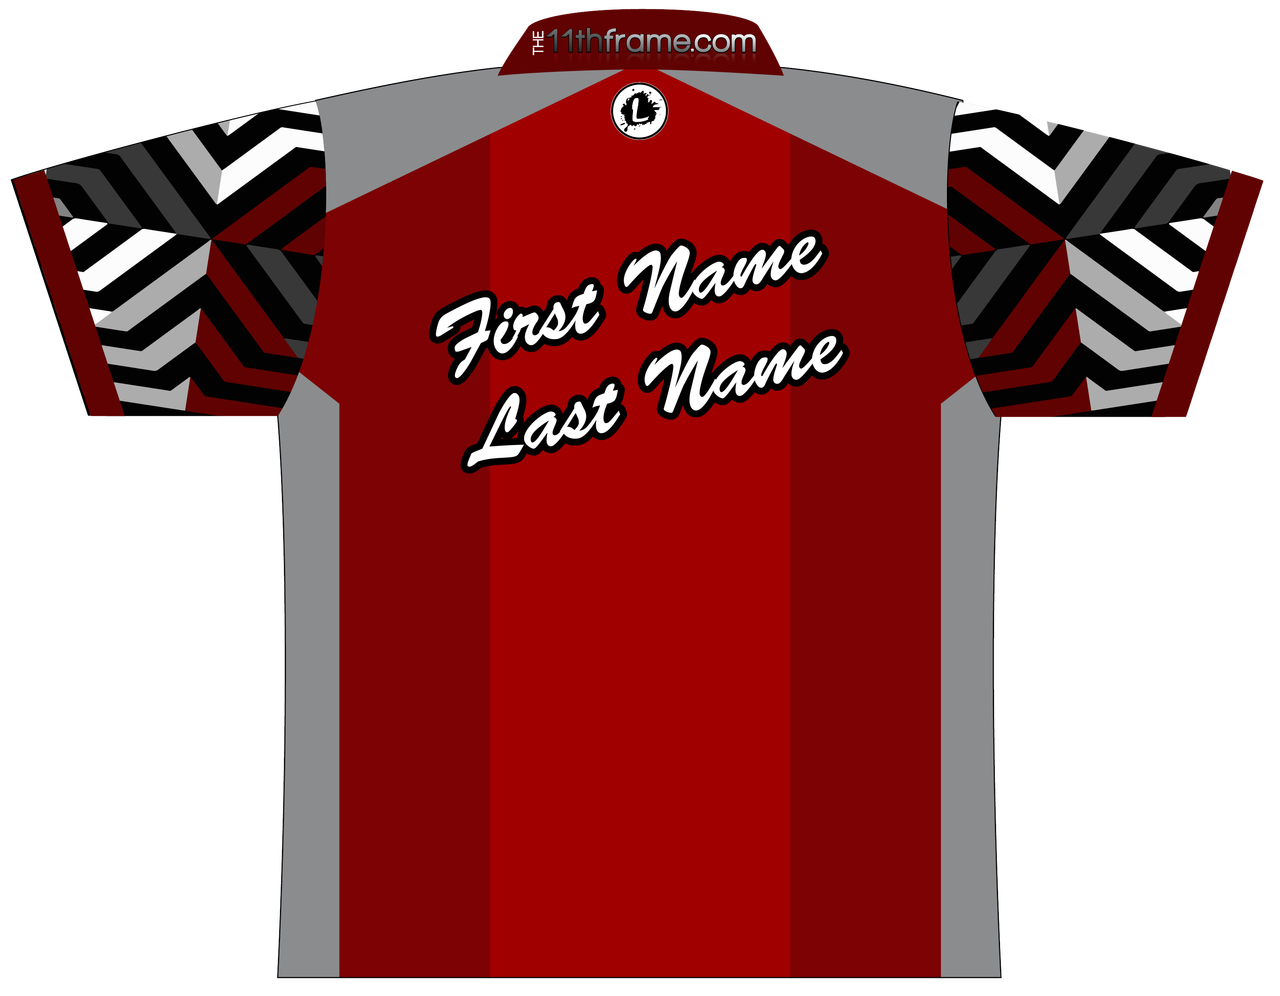 11thFrame.com Style 3 Dye Sublimated Jersey